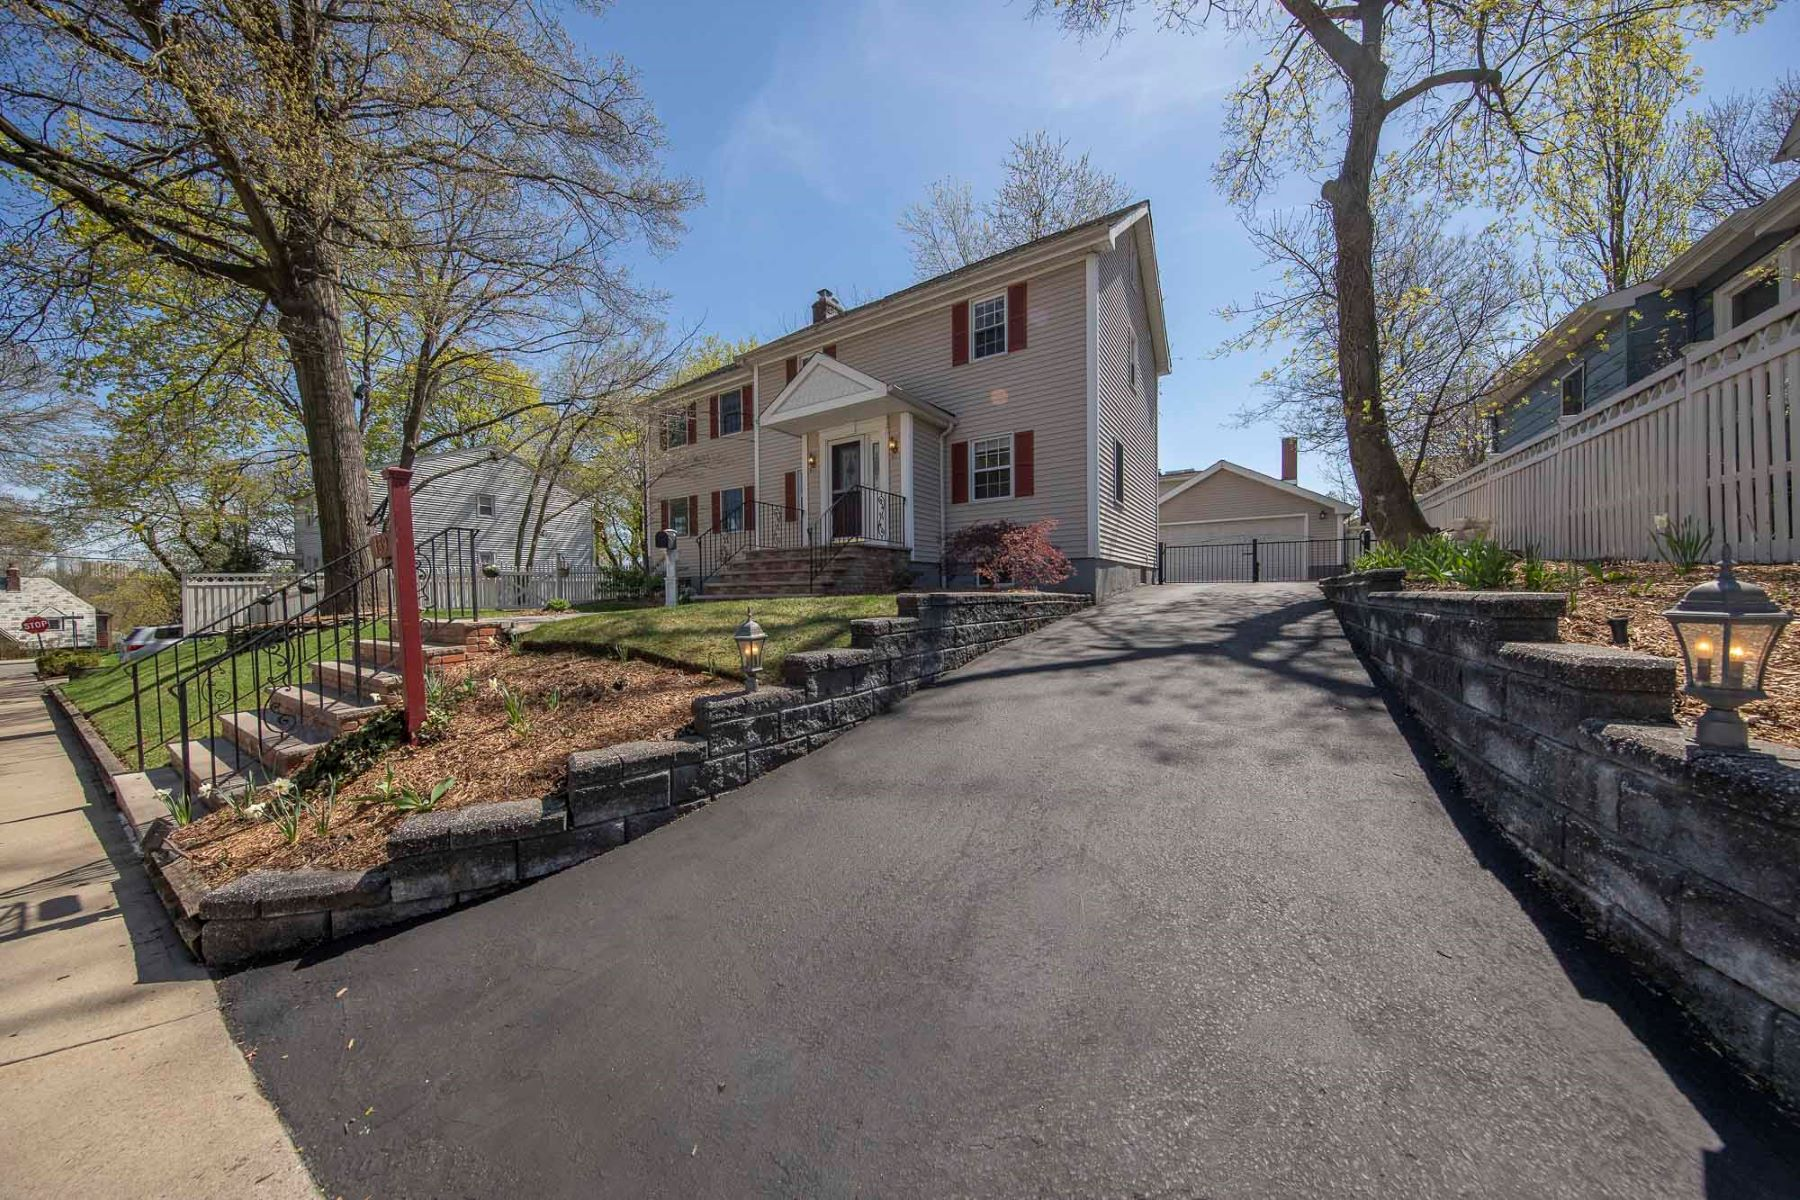 Single Family Homes for Sale at Expanded Colonial 139 Gordon Street Ridgefield Park, New Jersey 07660 United States